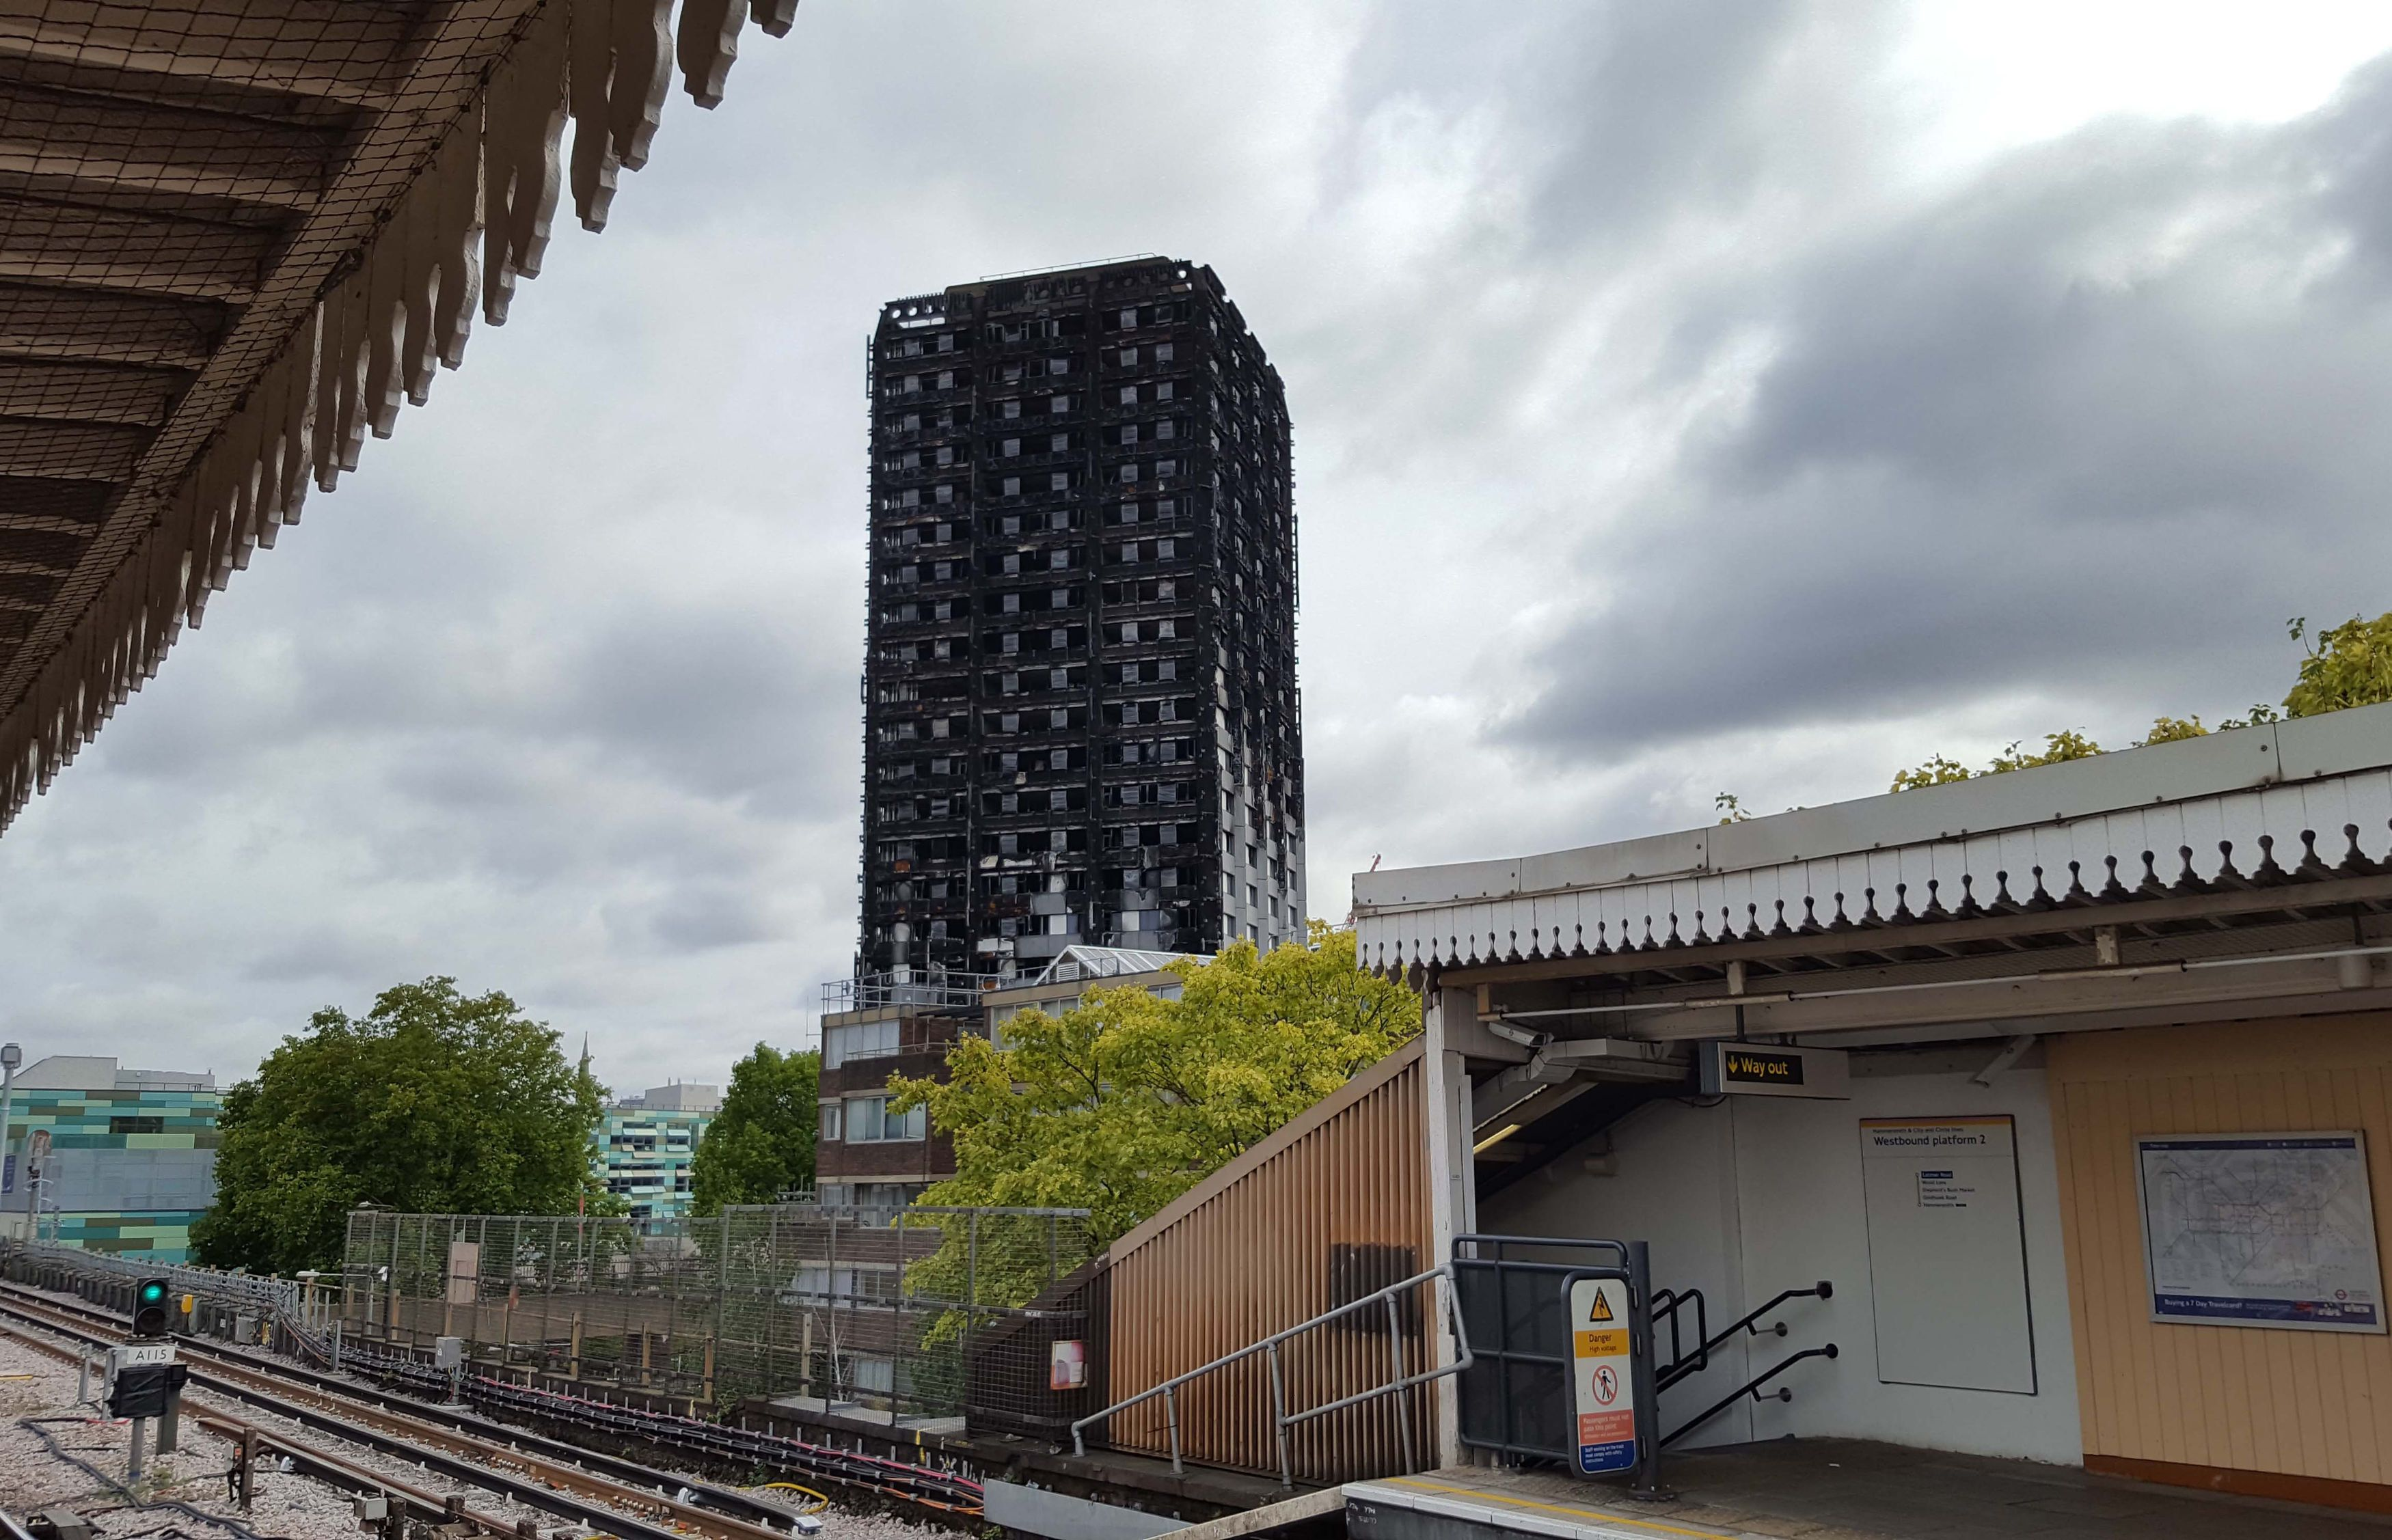 Government finally agrees to pay £400000000 to remove cladding after Grenfell fire